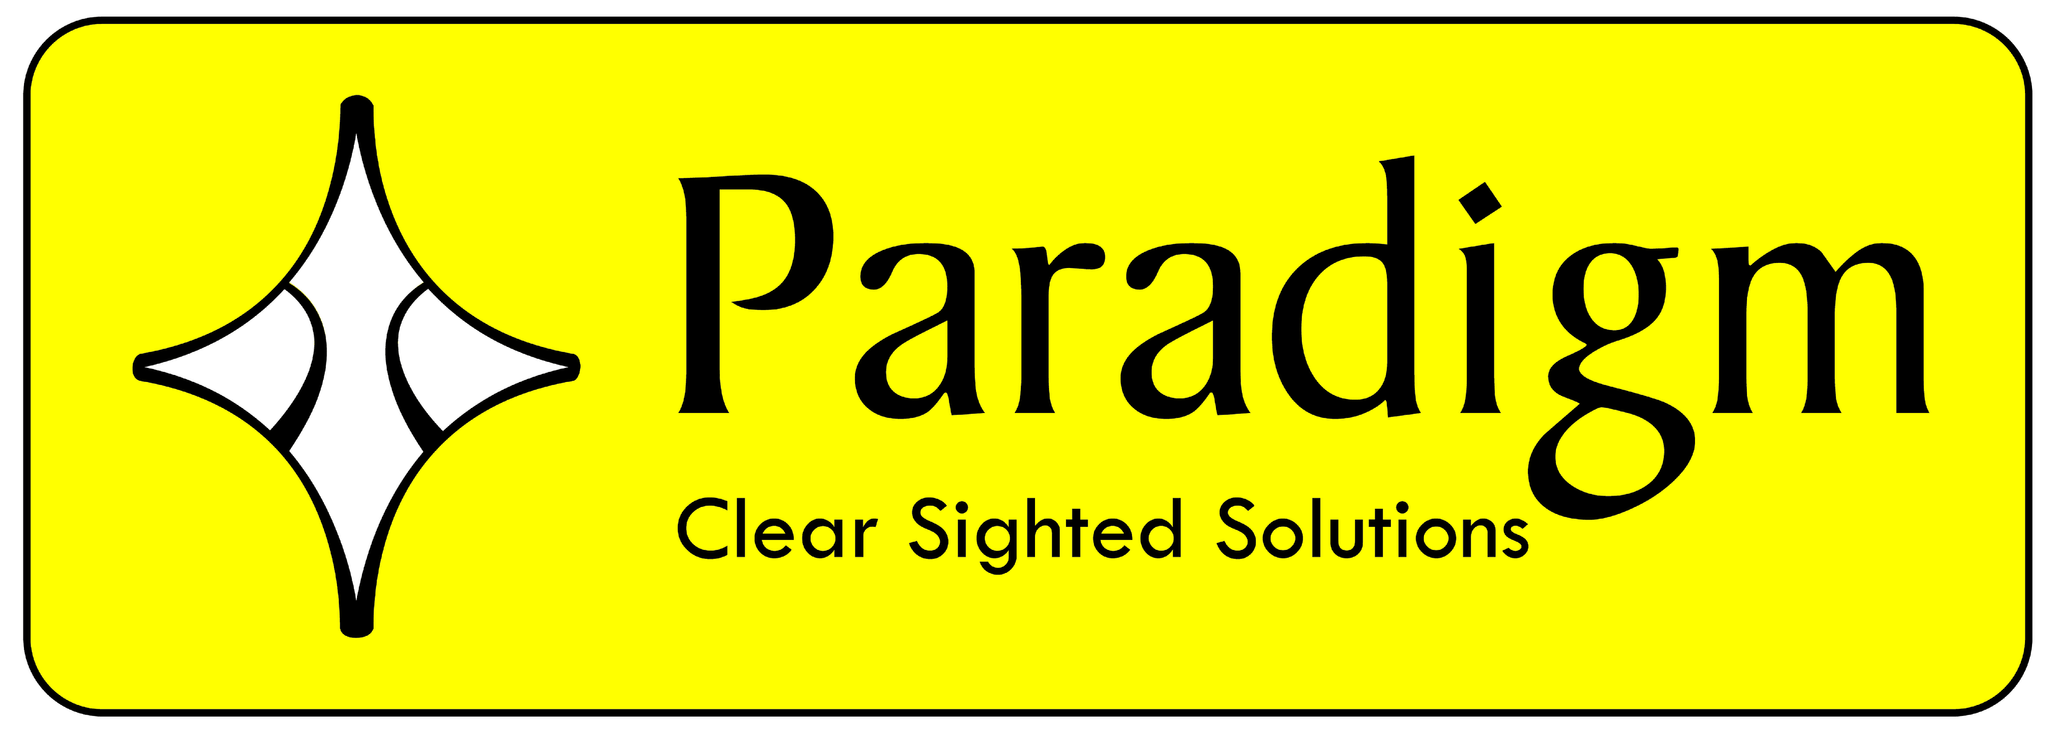 Paradigm Communications Systems